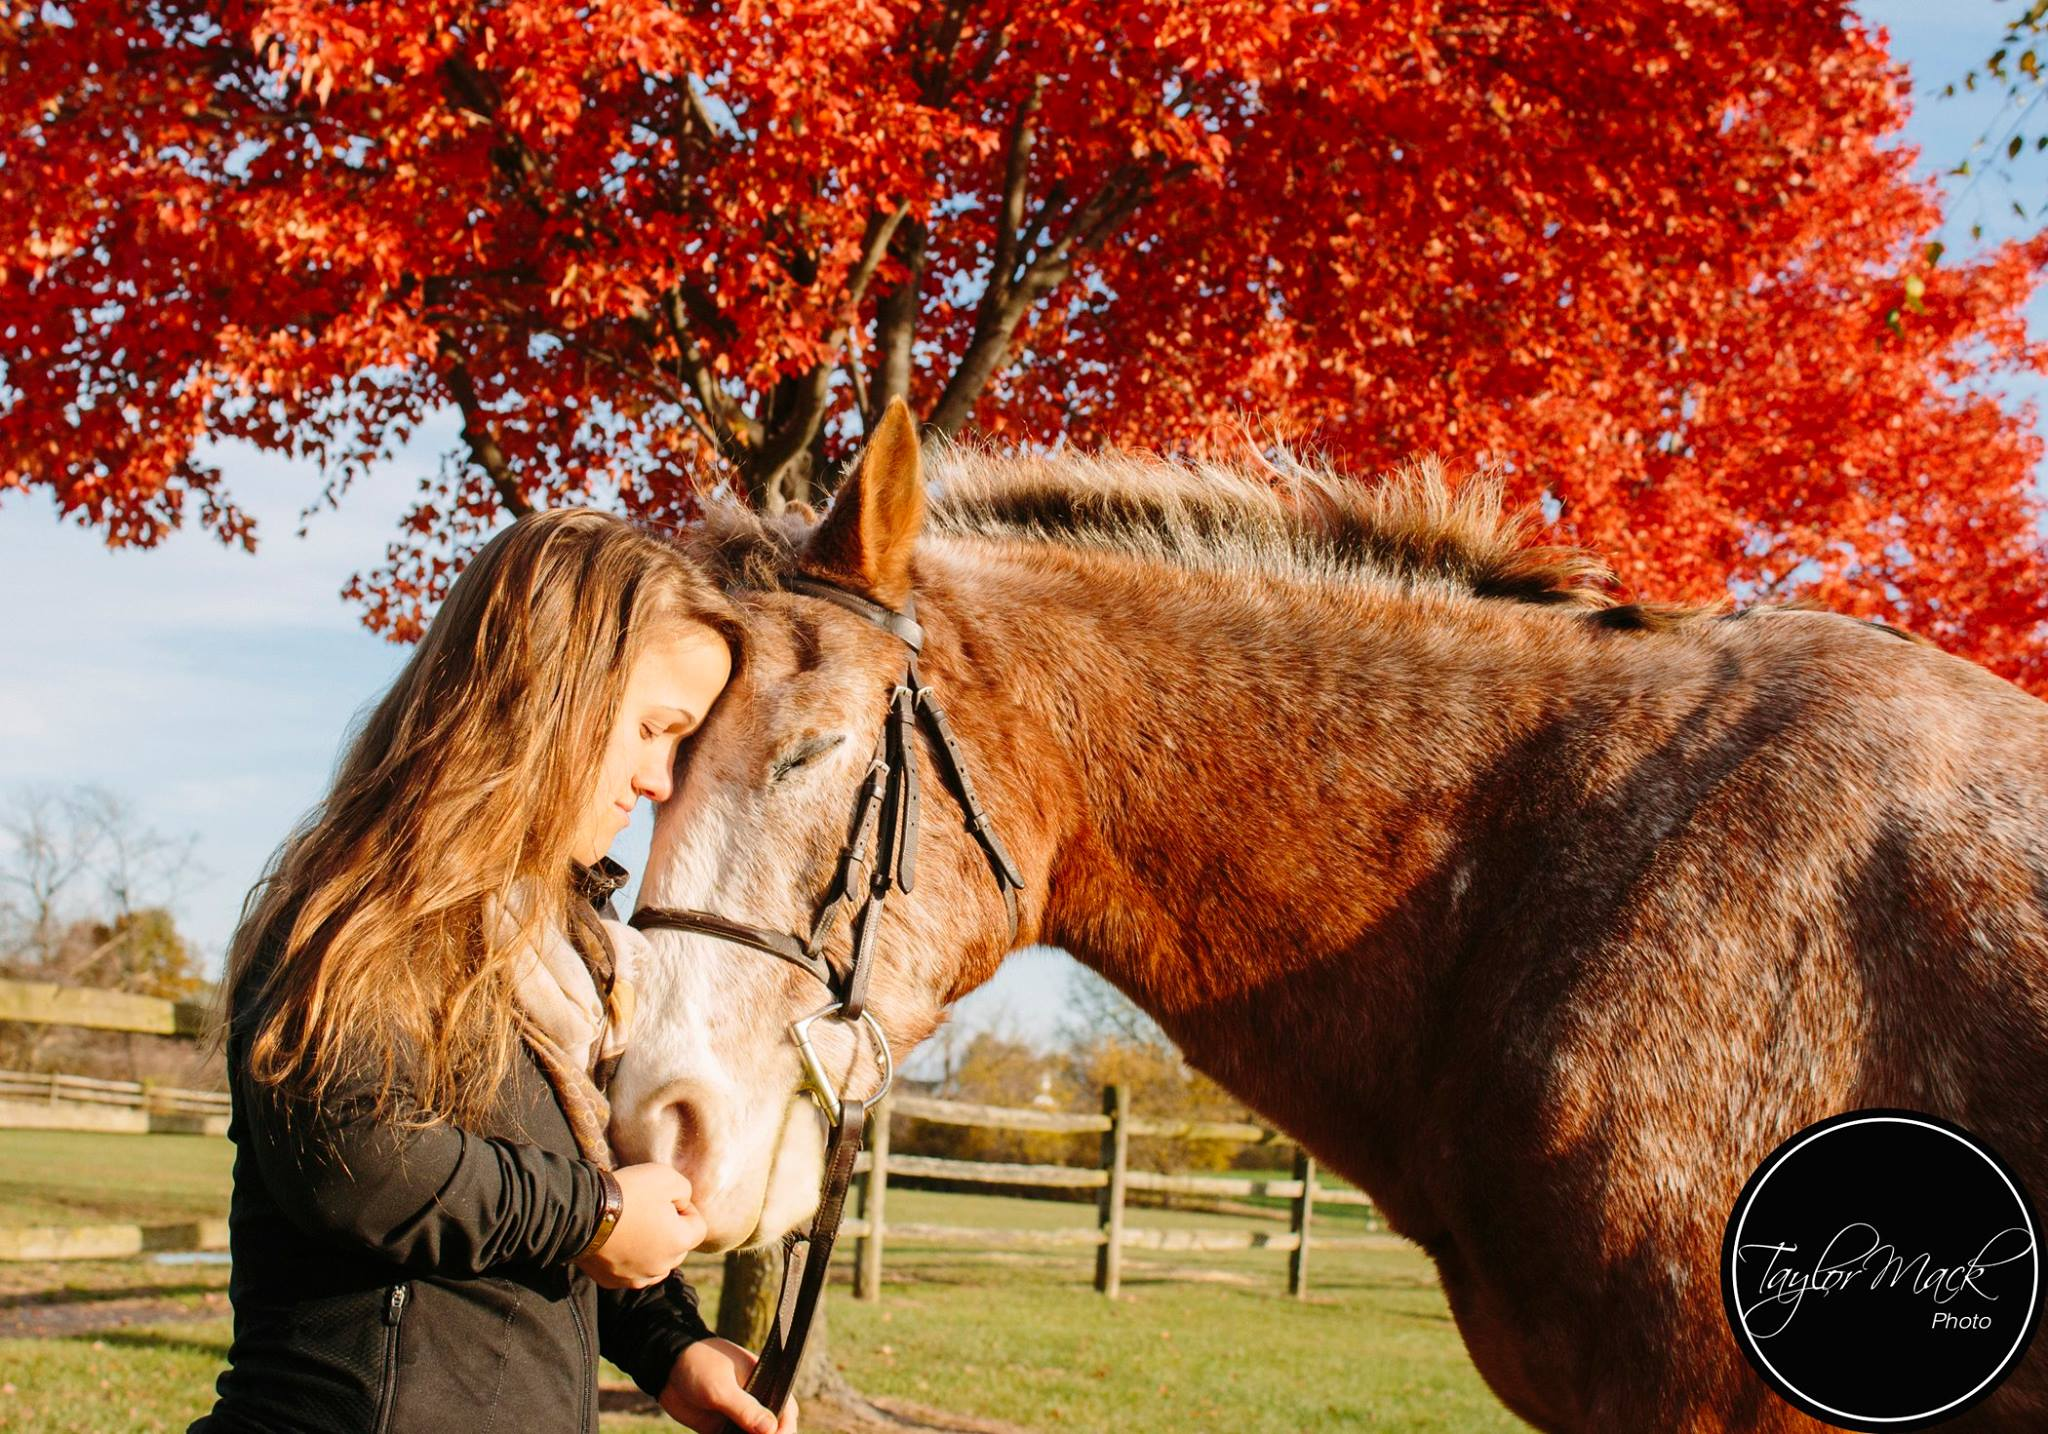 Swatch Studios Intern Captures Model and Horse